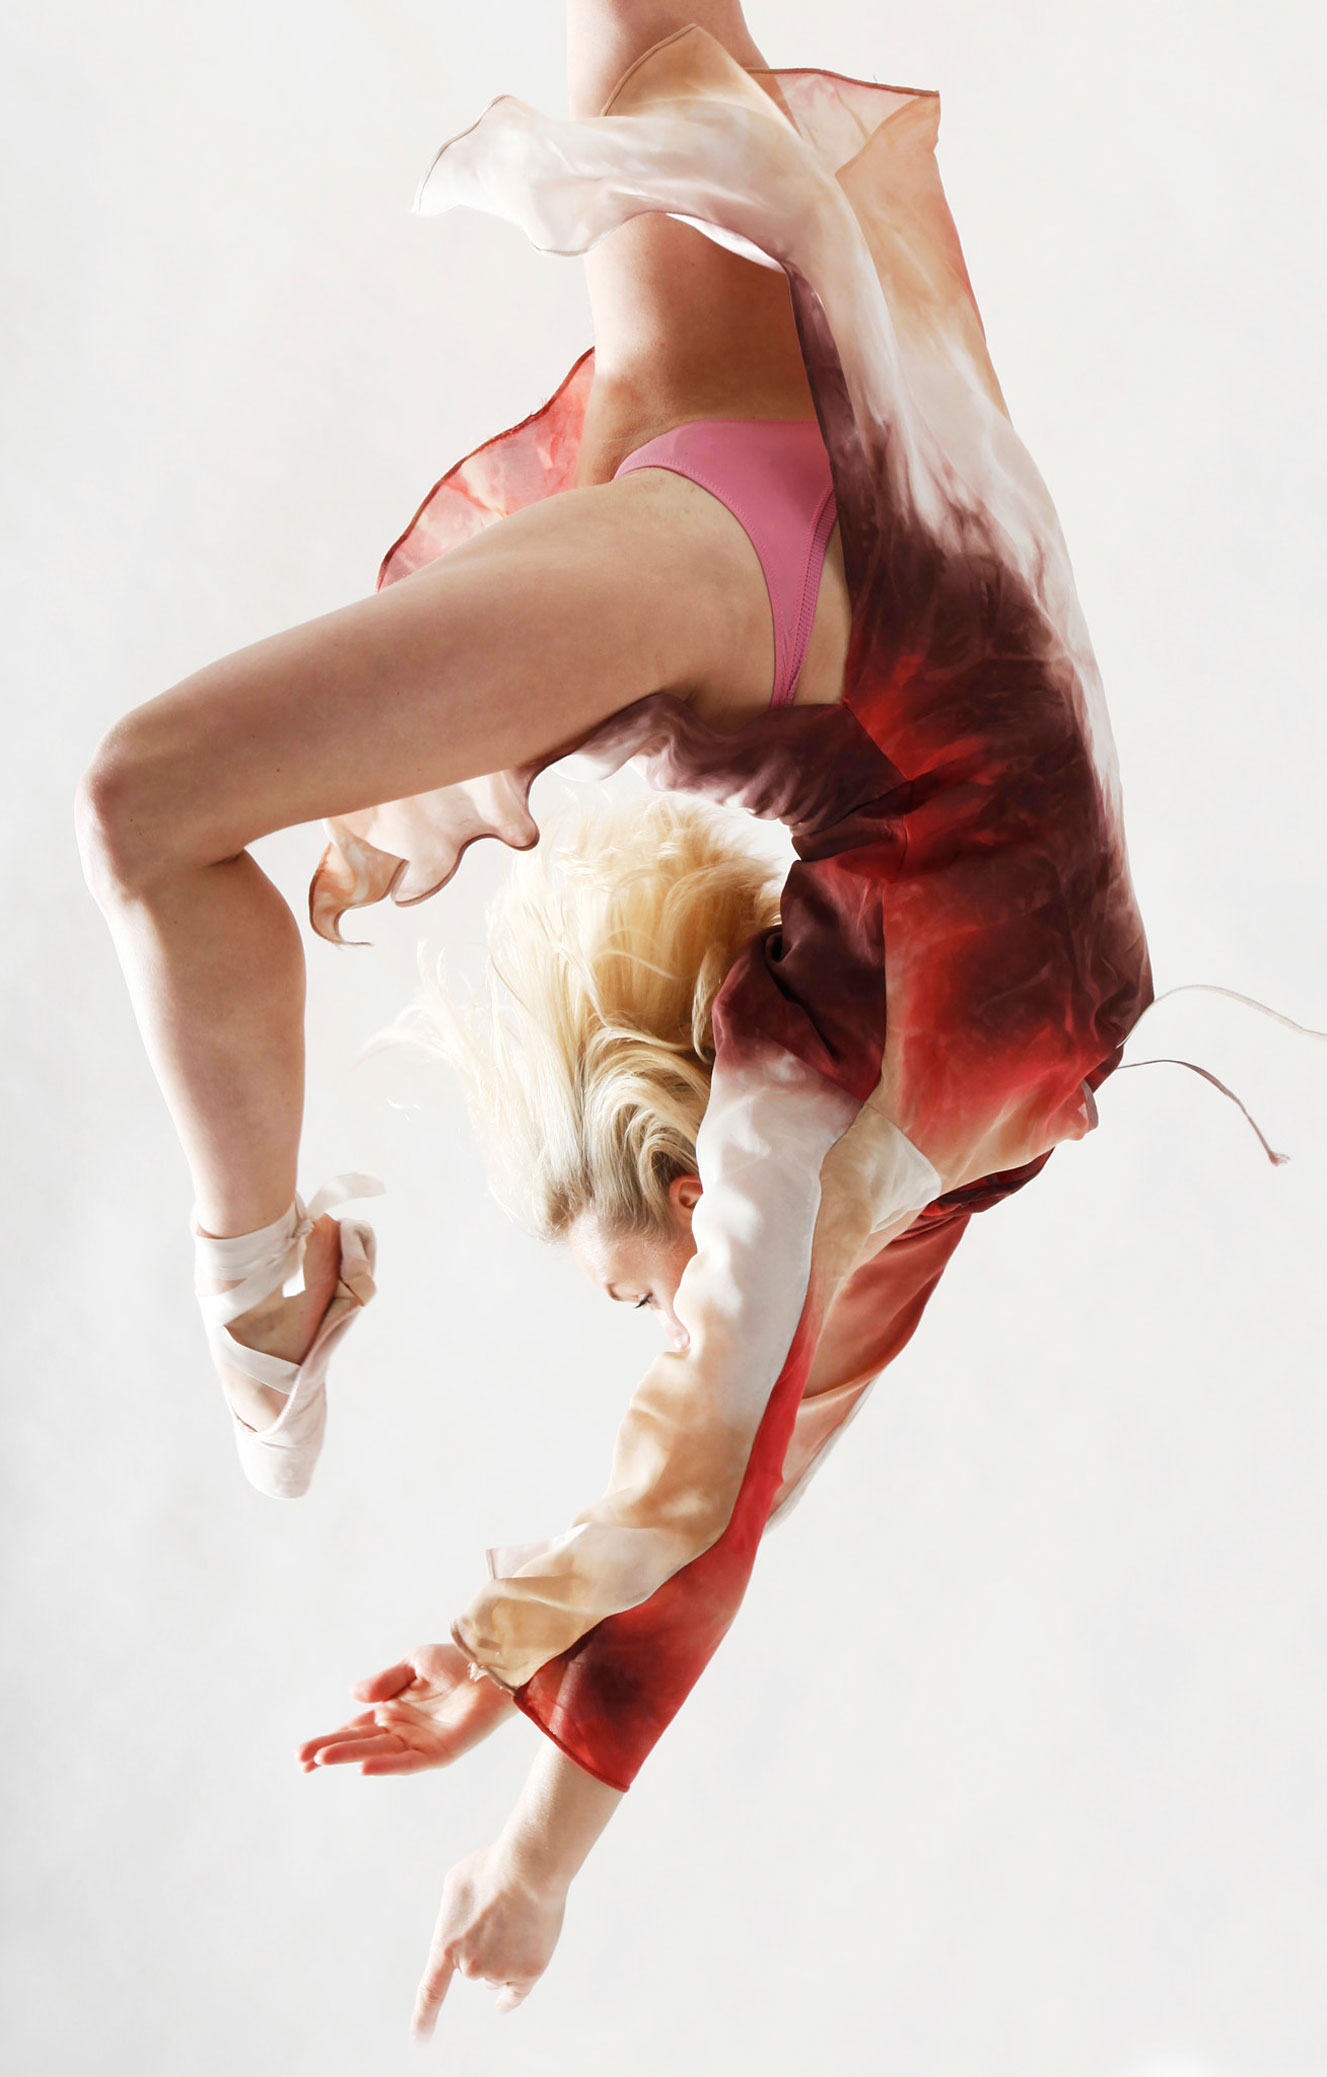 dance, gymnastic, acrobatic photography by carsten thun